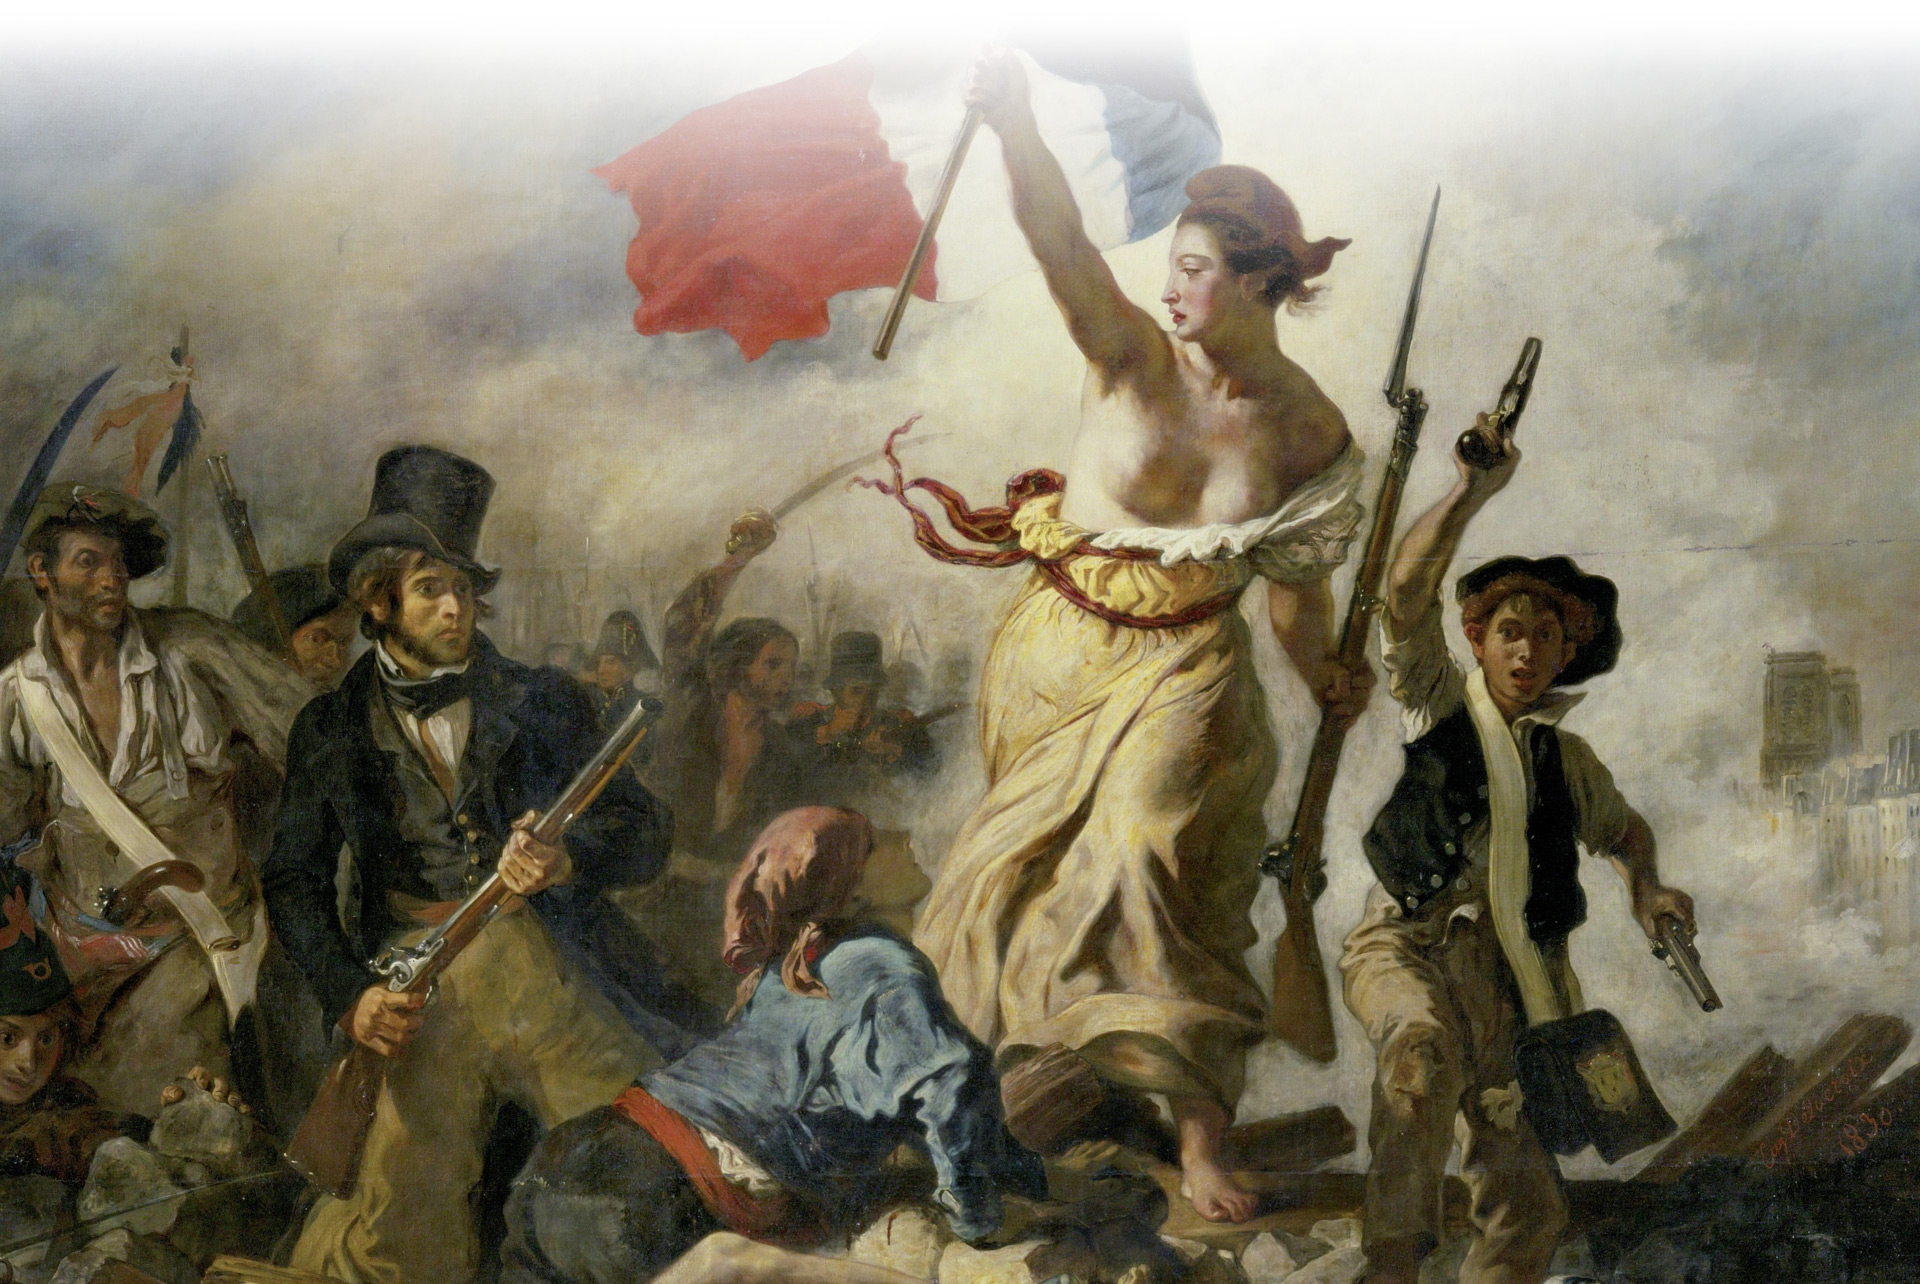 Delacroix painting studied by our History majors